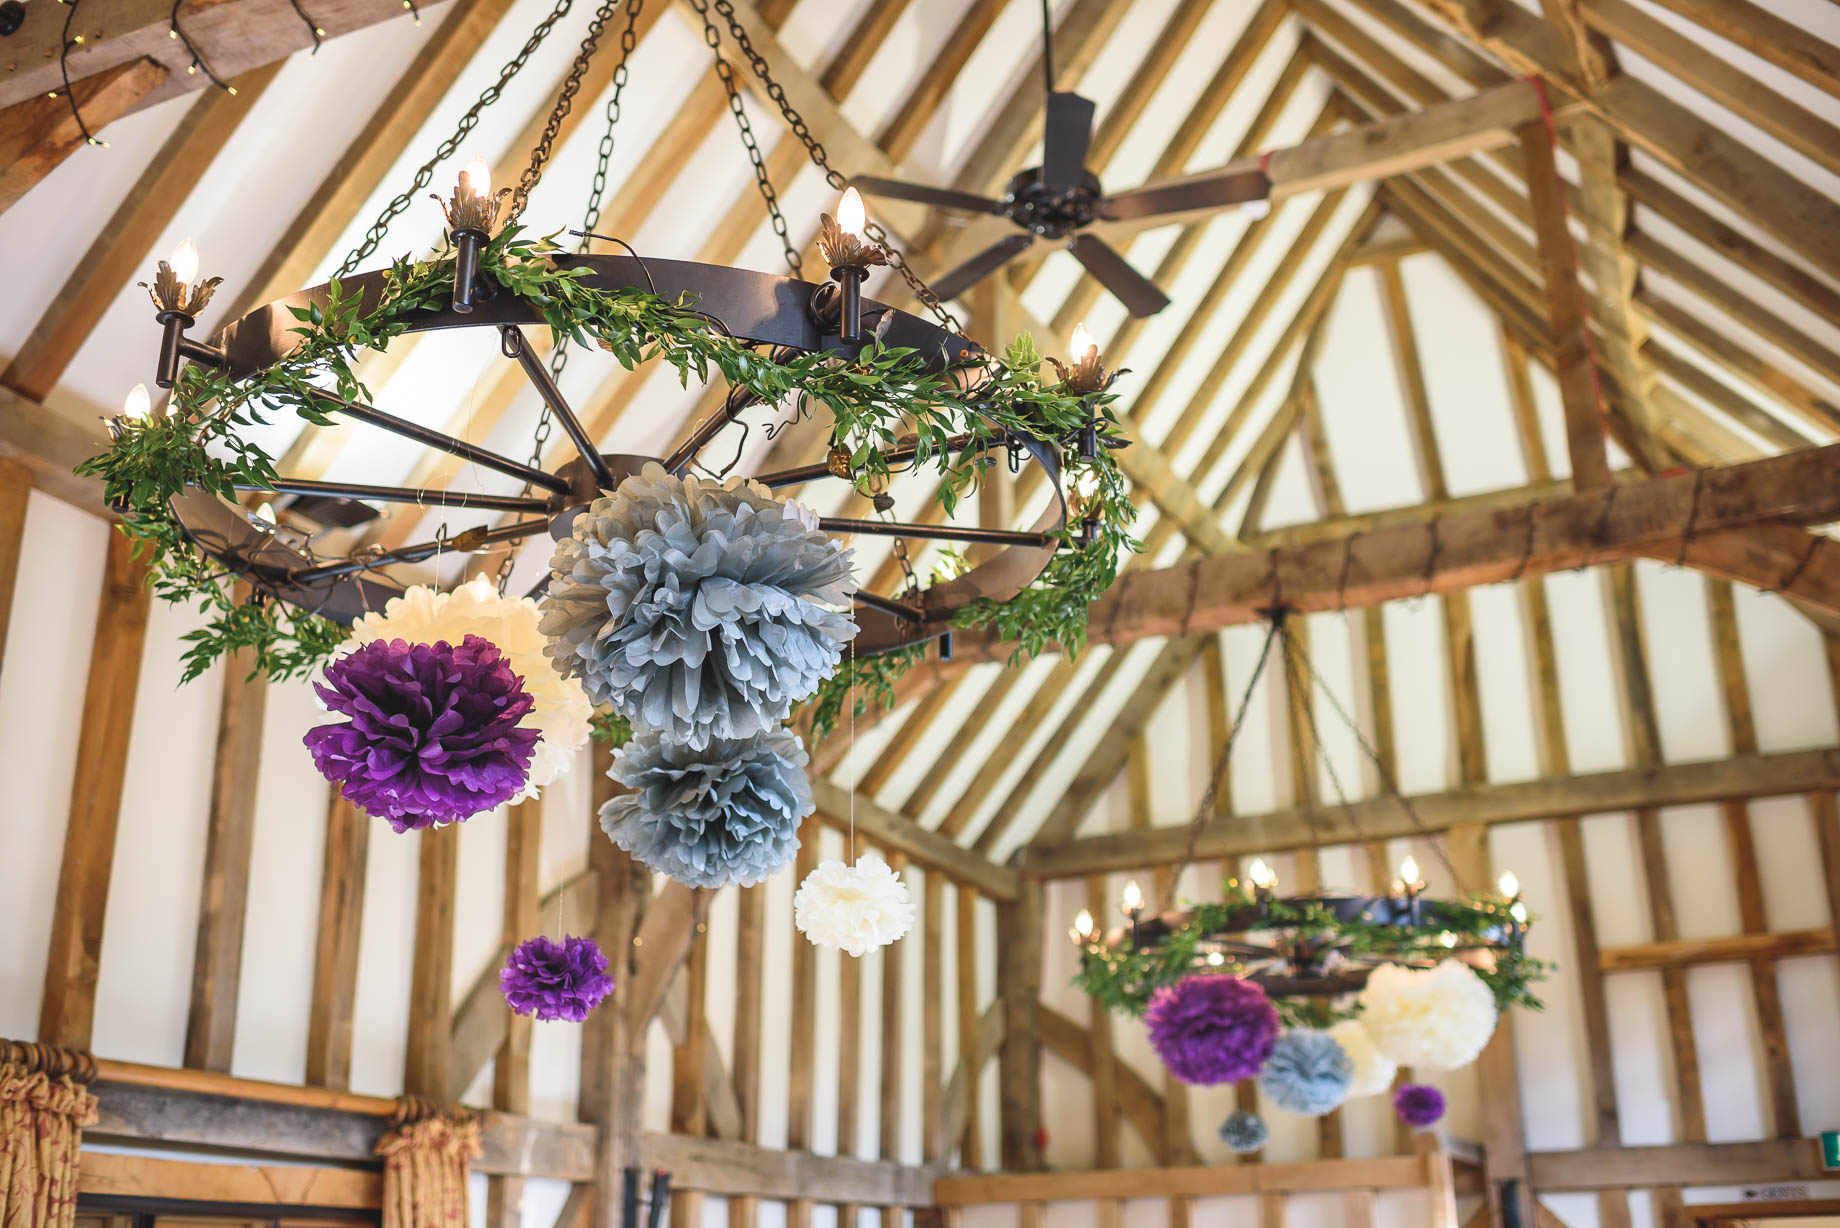 Gate Street Barn wedding photography - Guy Collier - Claire and Andy (115 of 192)